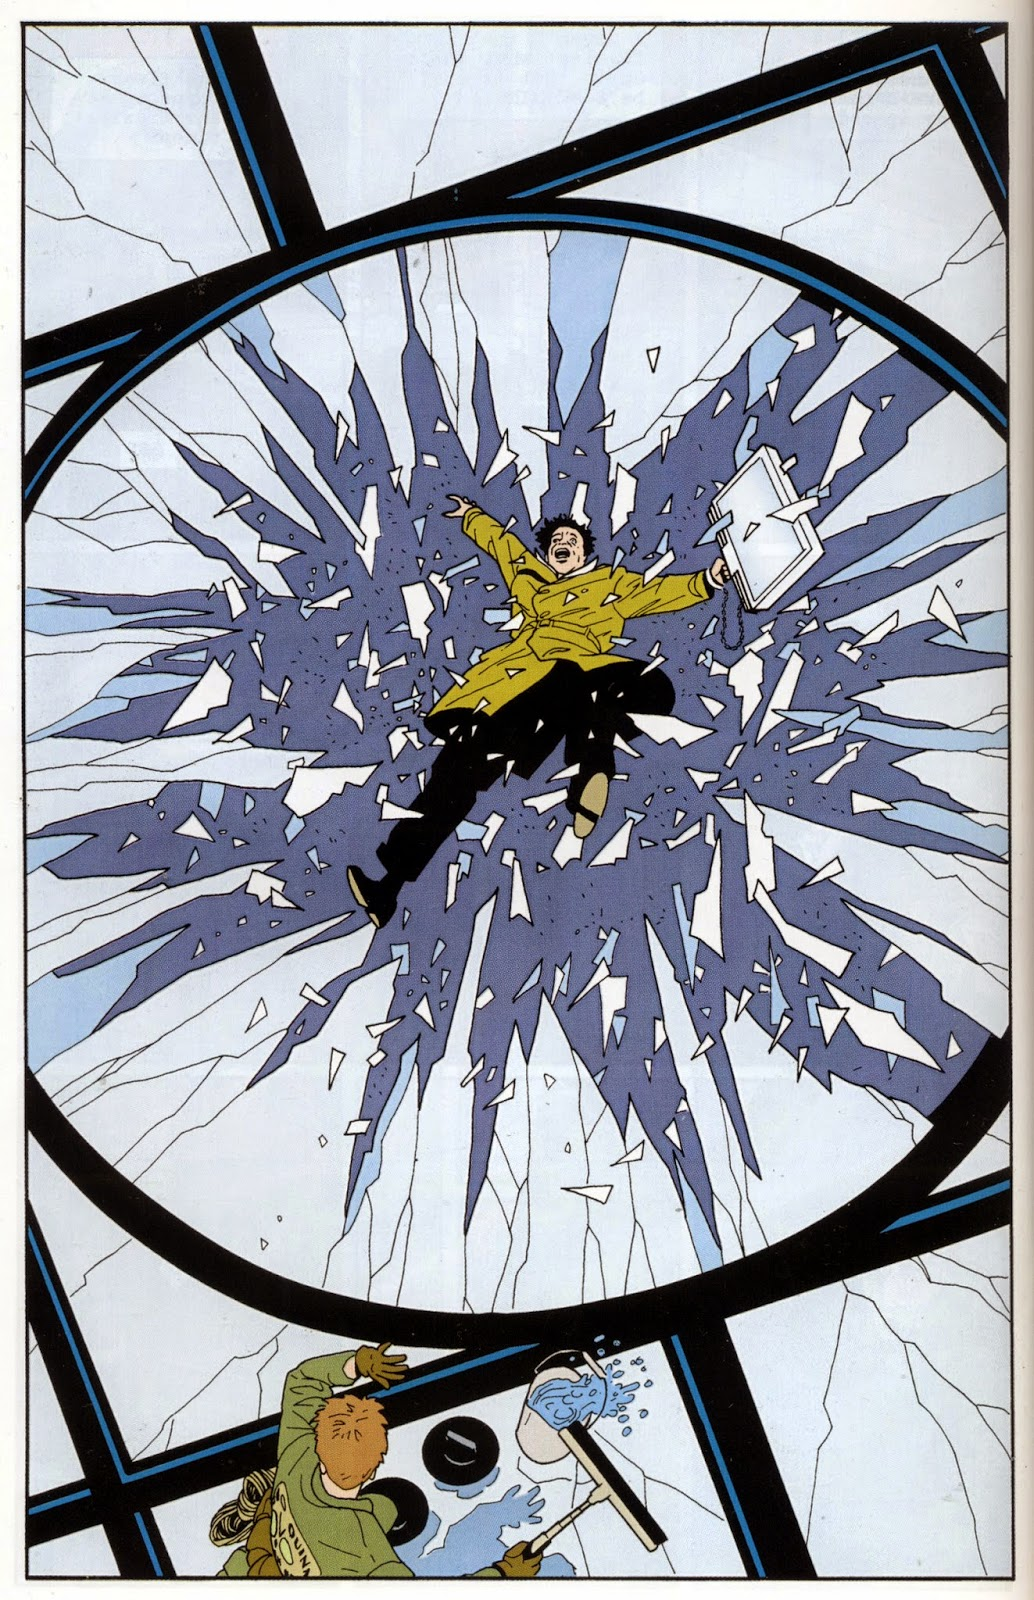 panel from Terminal City showing man crashing through a window